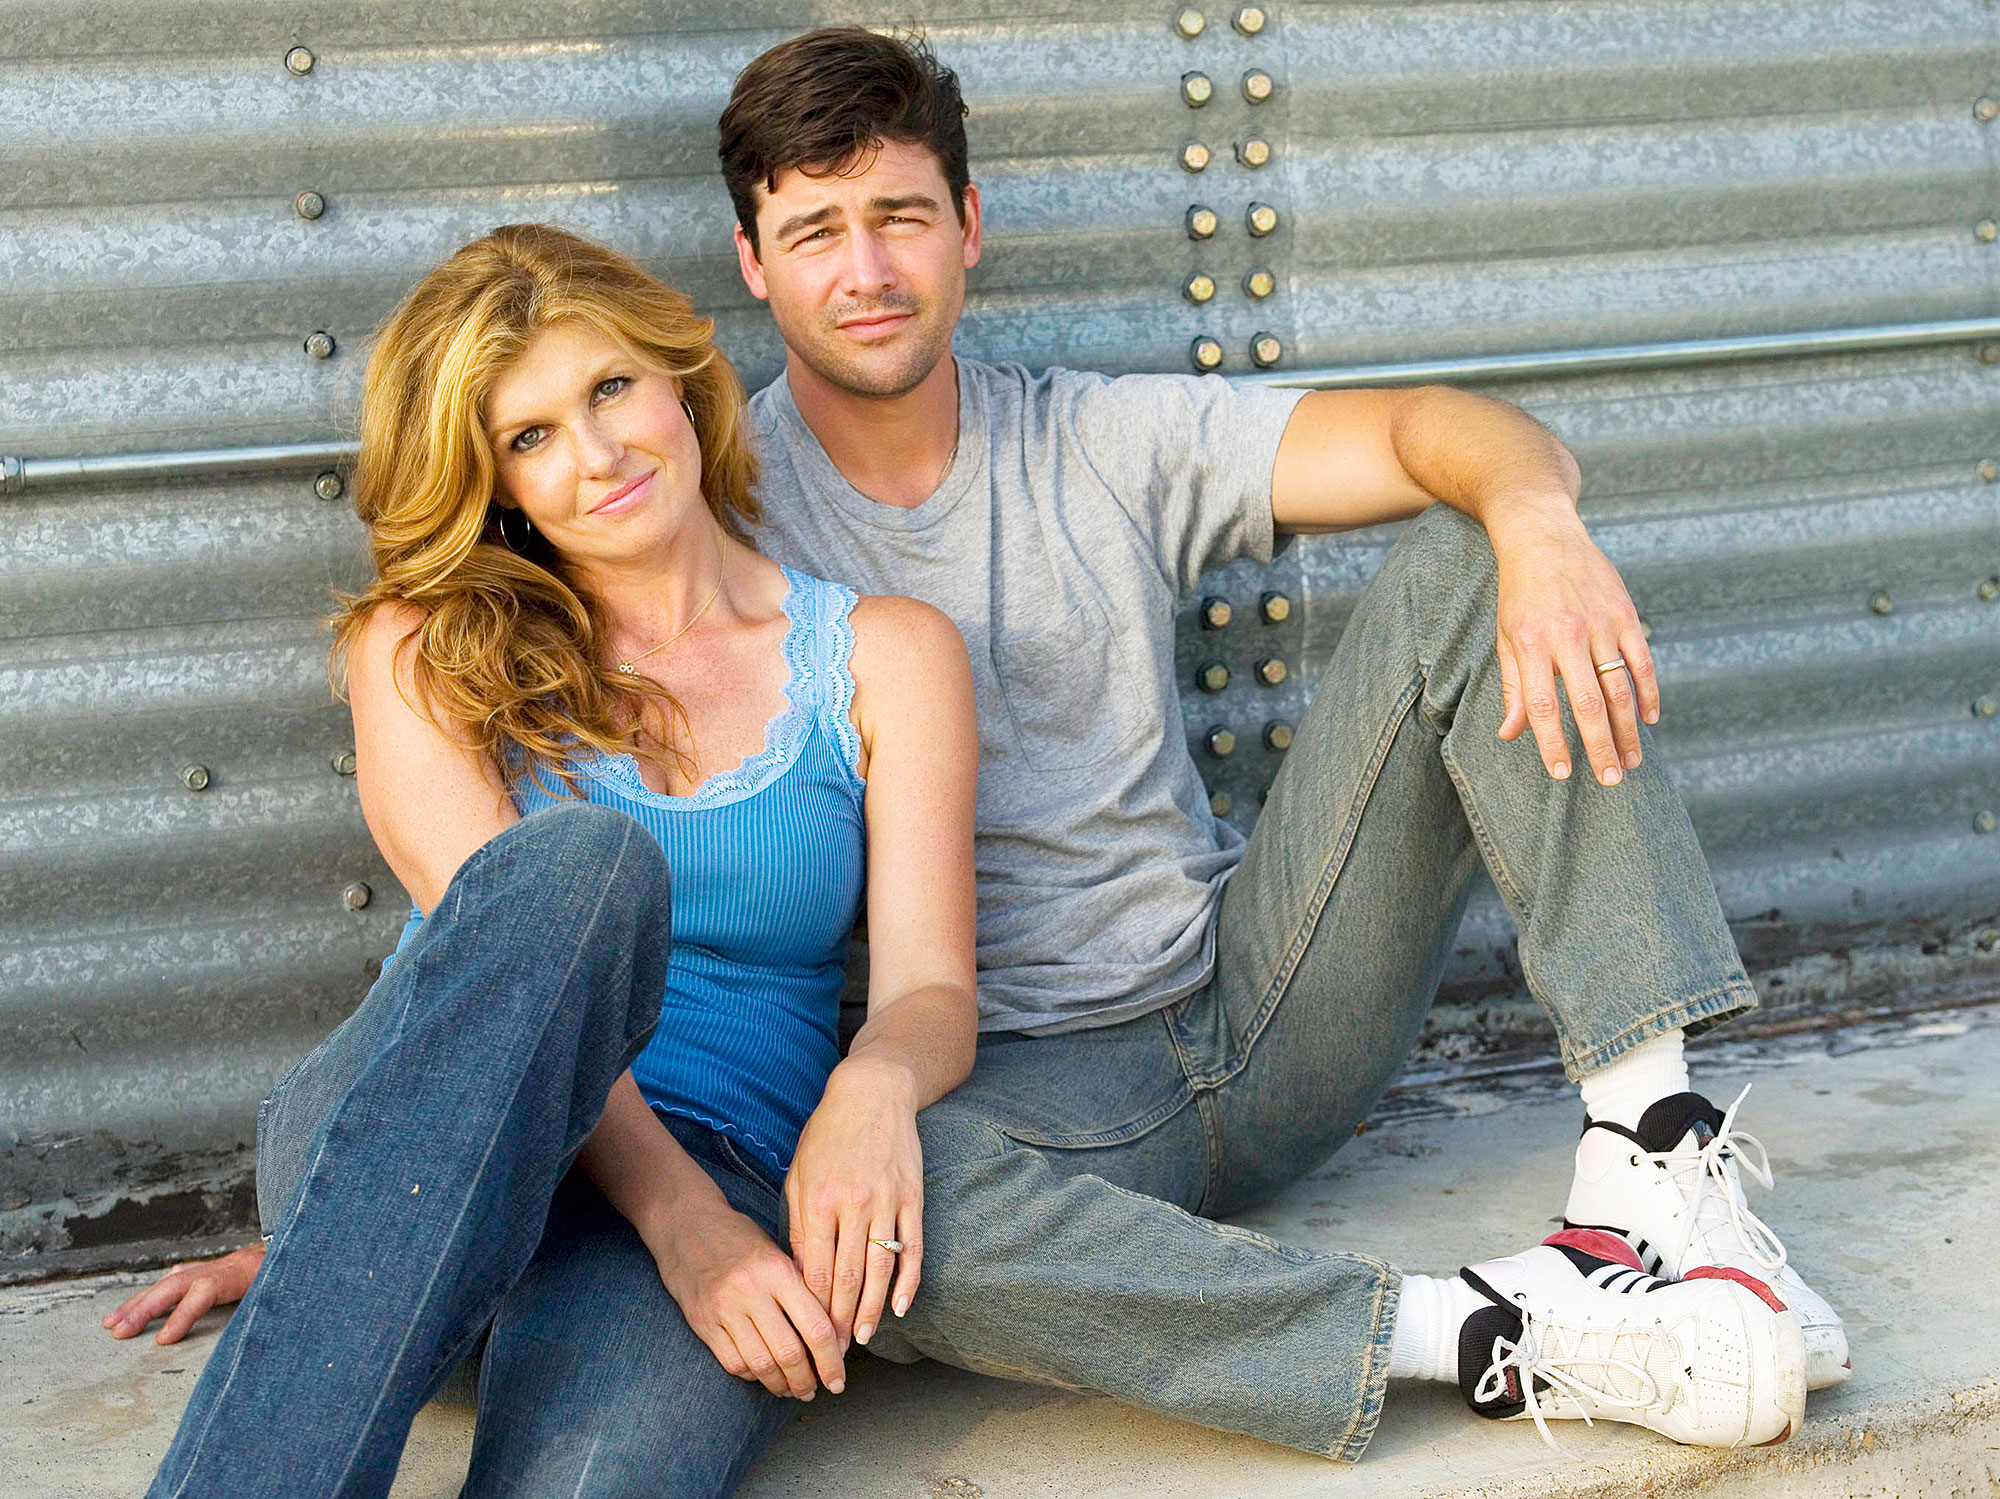 Best TV Couples Friday Night Lights Connie Britton Kyle Chandler - Show: Friday Night Lights Actors: Connie Britton and Kyle Chandler Networks: NBC and DIRECTV Seasons: 5